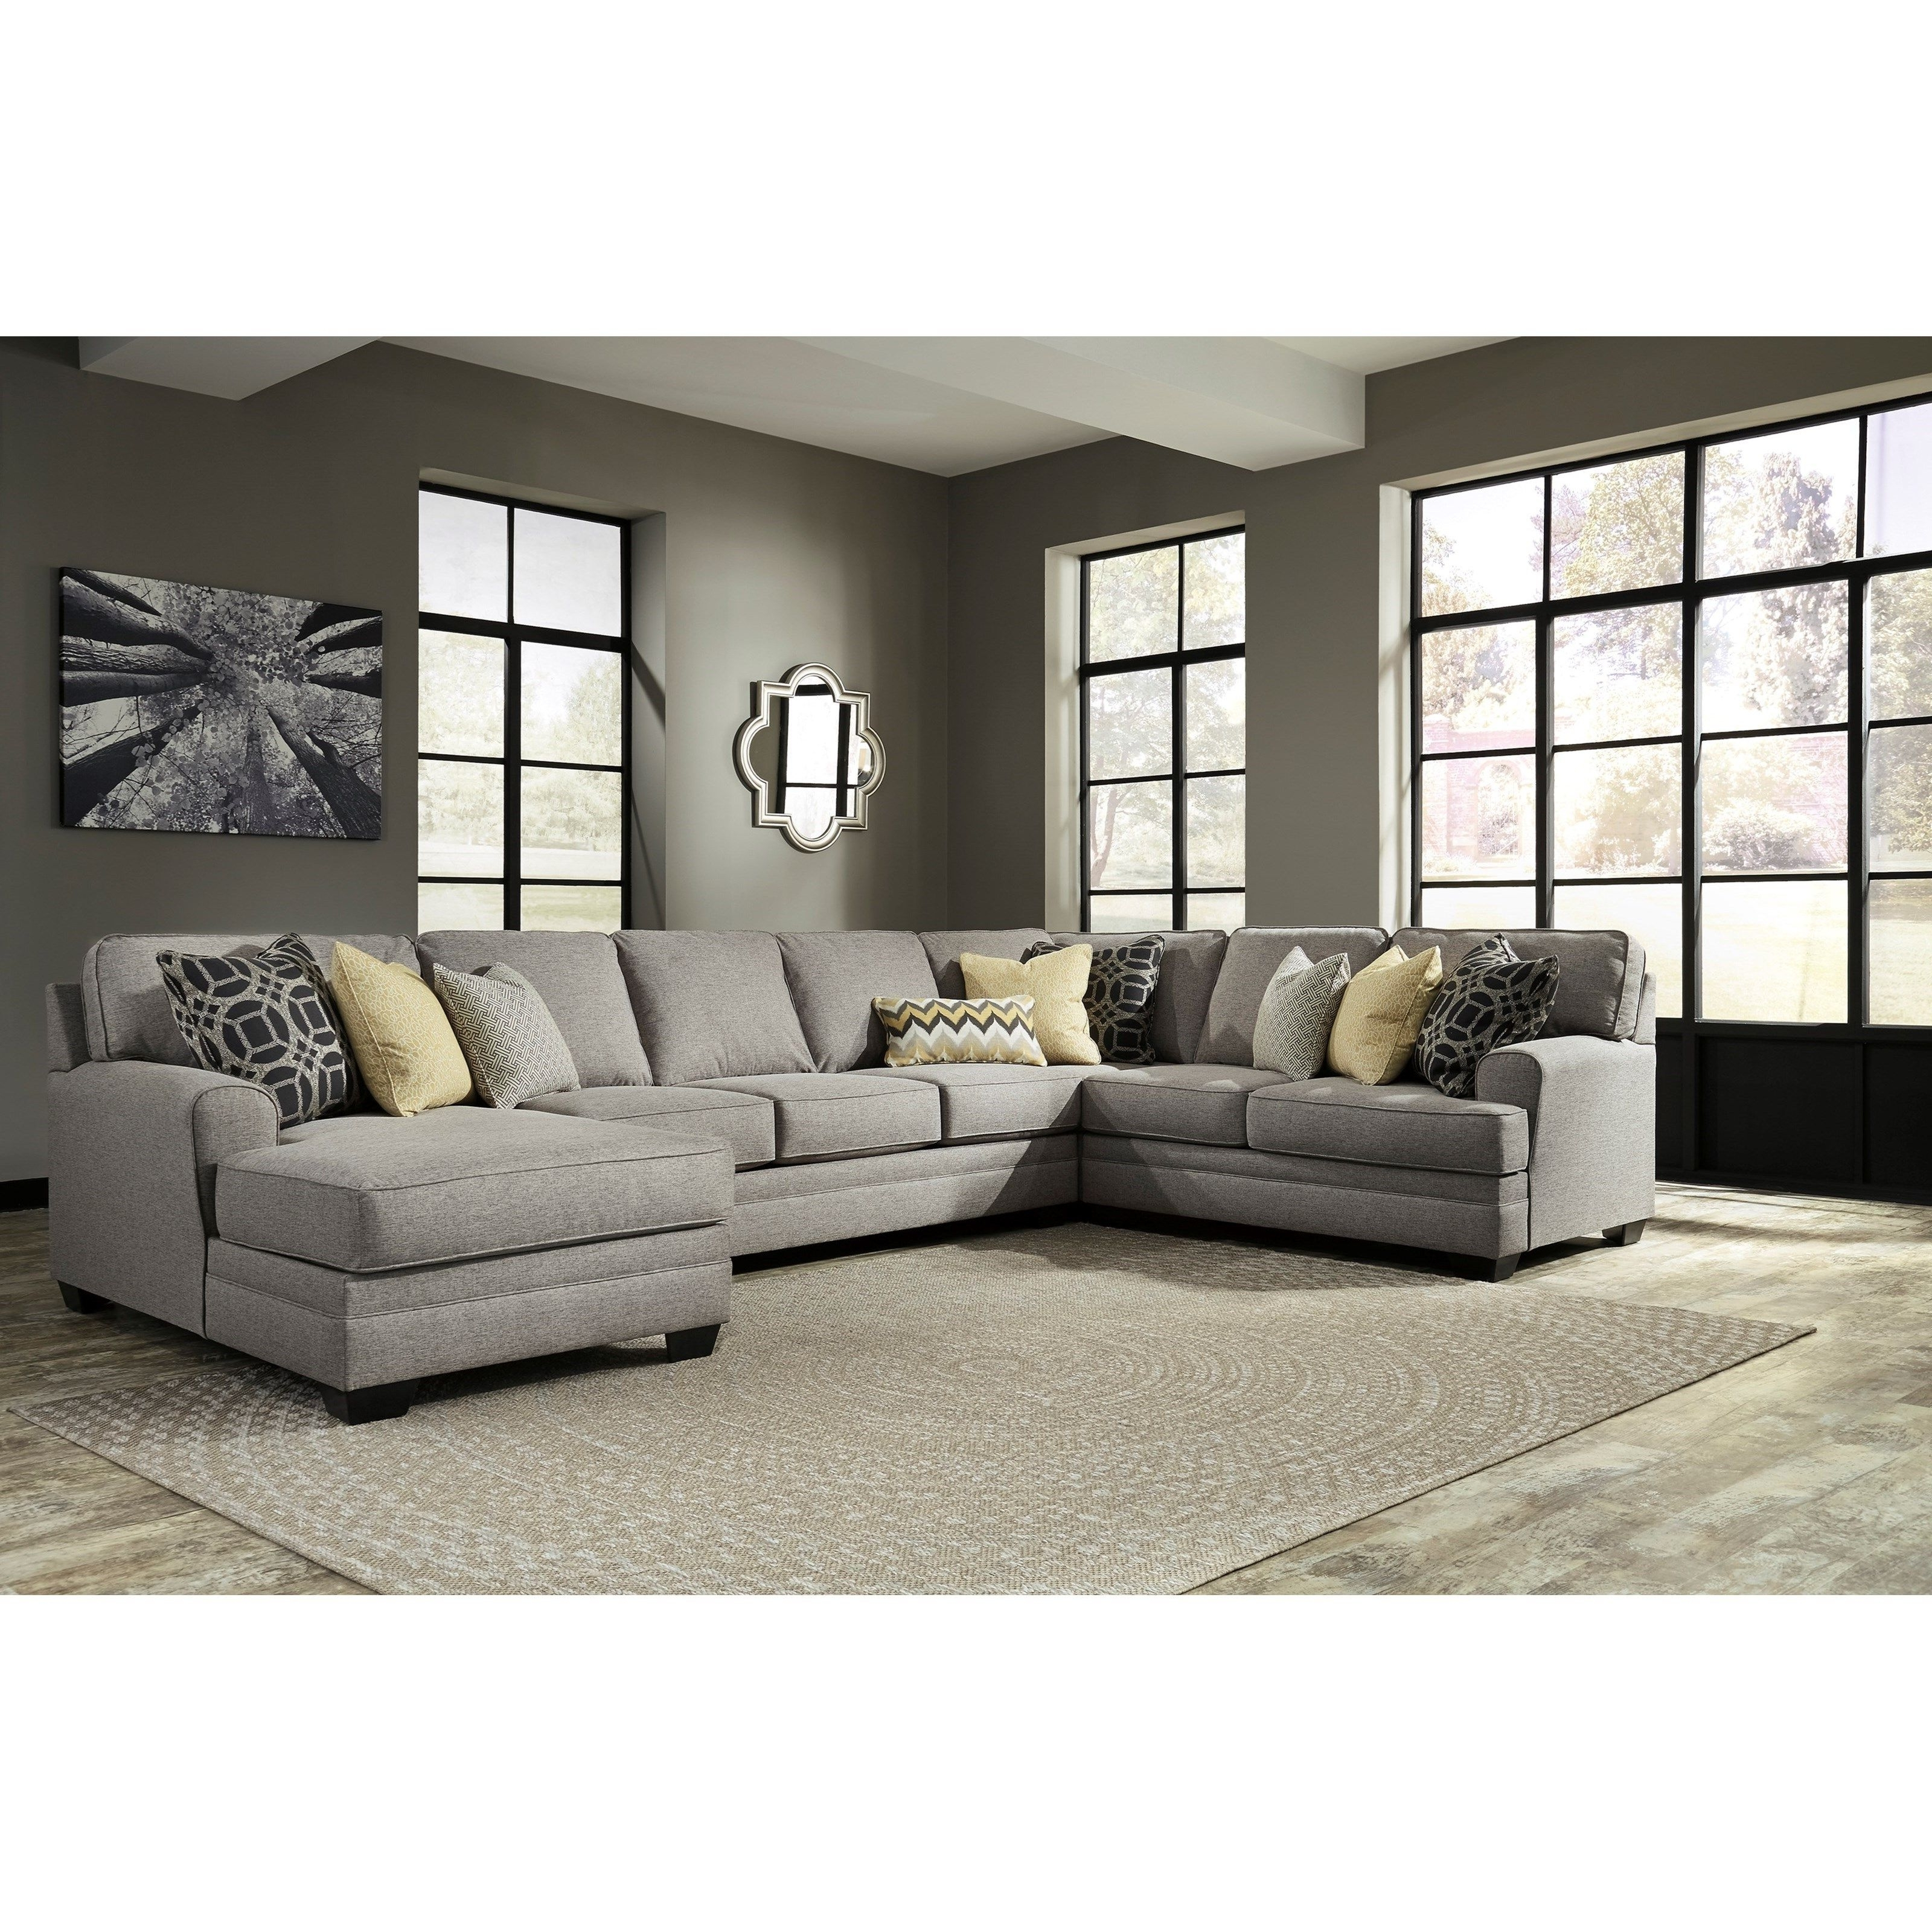 Preferred Contemporary 4 Piece Sectional With Chaise & Armless Sofa (View 15 of 20)